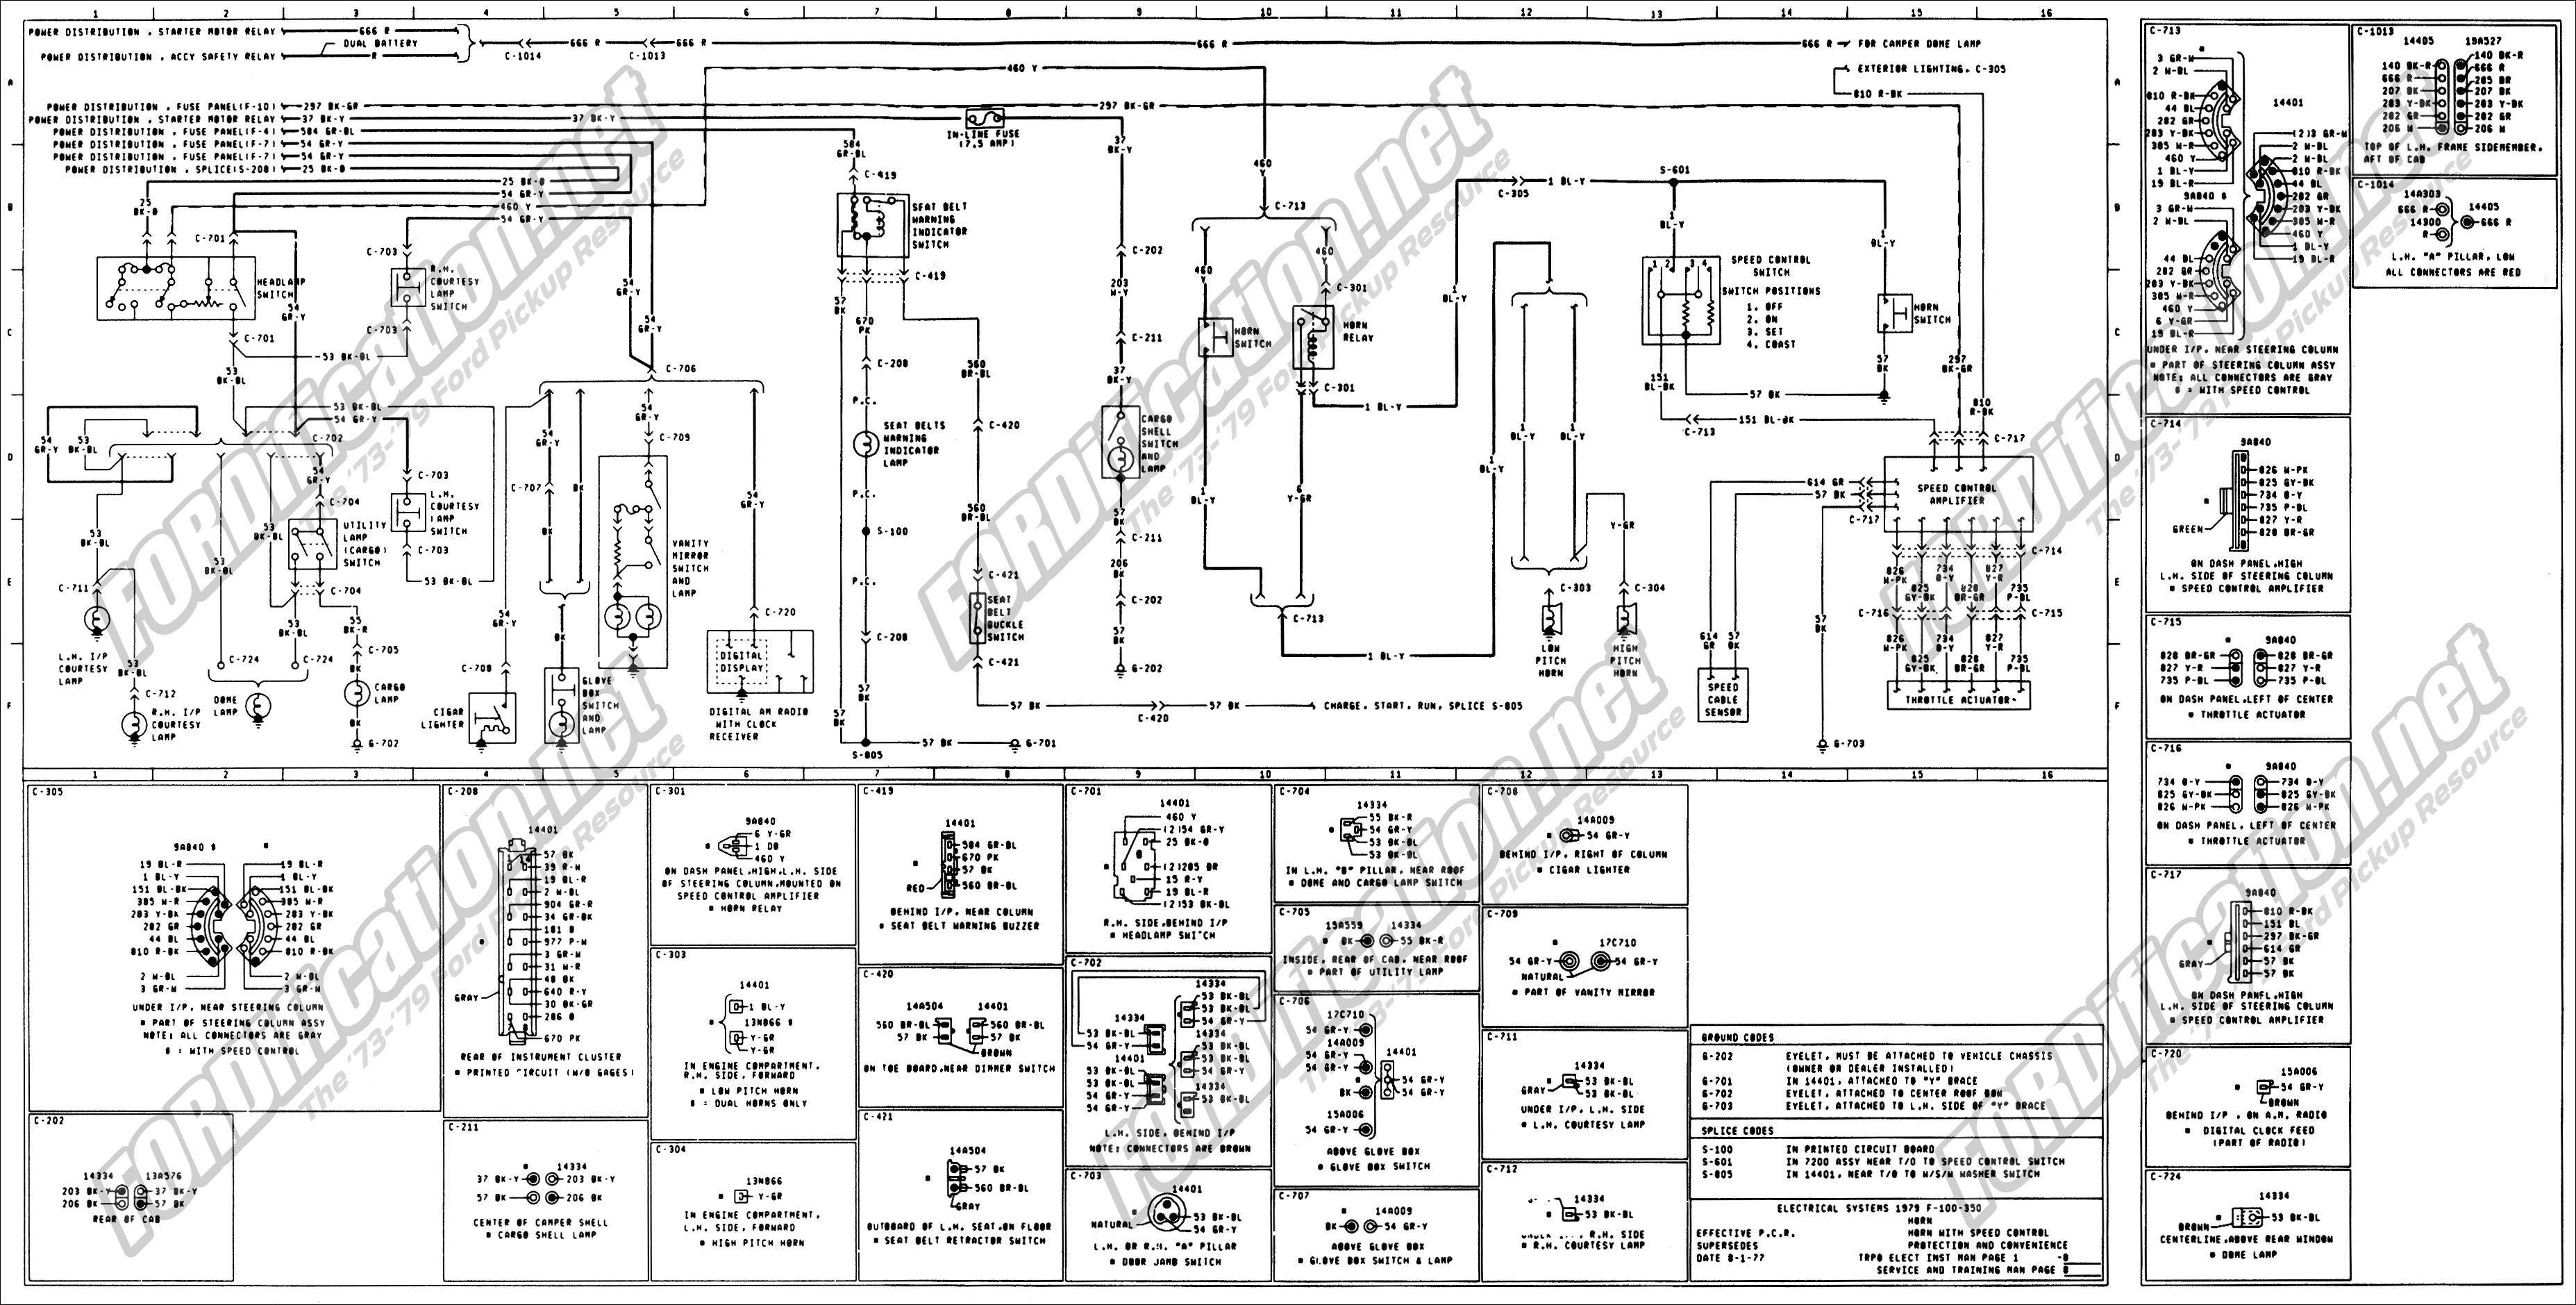 F350 Wiring Diagram. F350. Free Wiring Diagrams